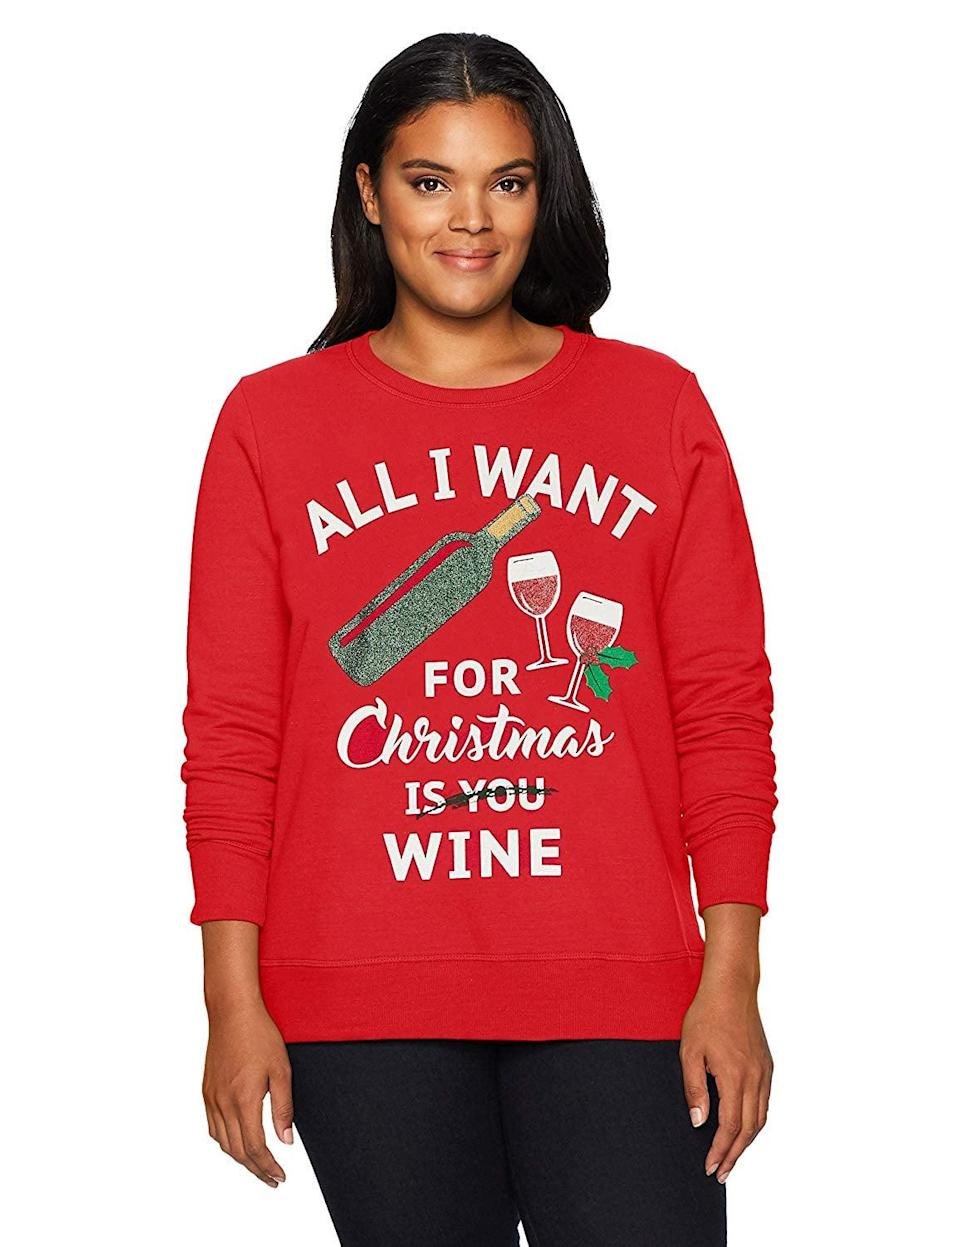 """<p>If this <a rel=""""nofollow noopener"""" href=""""https://www.popsugar.com/buy/Just%20My%20Size%20Women%27s%20Ugly%20Christmas%20Sweatshirt-386139?p_name=Just%20My%20Size%20Women%27s%20Ugly%20Christmas%20Sweatshirt&retailer=amazon.com&price=17&evar1=tres%3Aus&evar9=45495879&evar98=https%3A%2F%2Fwww.popsugar.com%2Flove%2Fphoto-gallery%2F45495879%2Fimage%2F45495890%2FJust-My-Size-Women-Ugly-Christmas-Sweatshirt&list1=shopping%2Camazon%2Csweaters%2Choliday%2Cchristmas%2Cwinter%2Cwinter%20fashion&prop13=mobile&pdata=1"""" target=""""_blank"""" data-ylk=""""slk:Just My Size Women's Ugly Christmas Sweatshirt"""" class=""""link rapid-noclick-resp"""">Just My Size Women's Ugly Christmas Sweatshirt</a> ($17) isn't us, we don't know what is.</p>"""